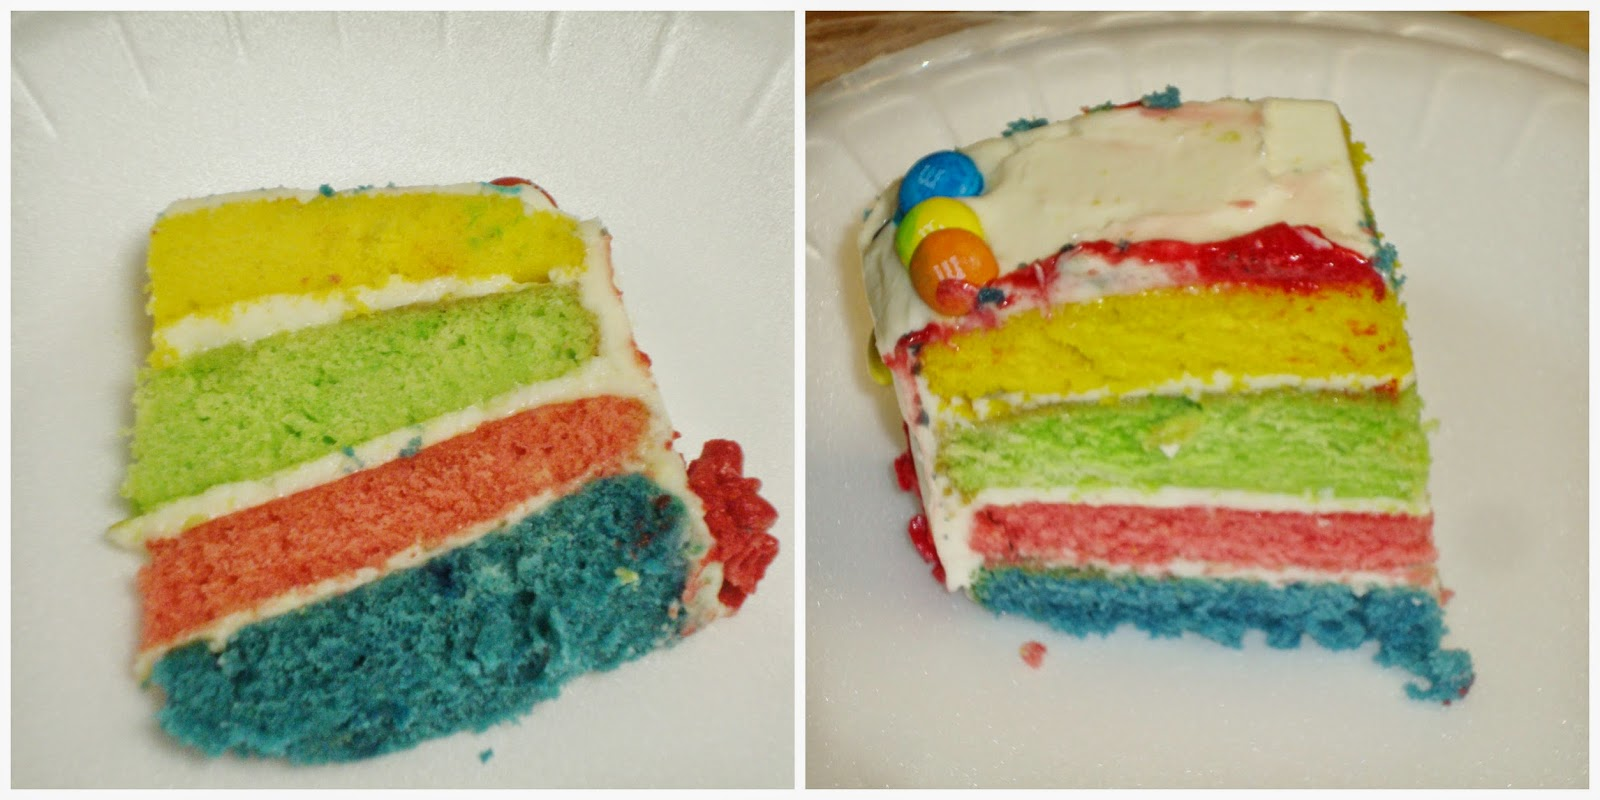 how to make a 4 layer rainbow cake